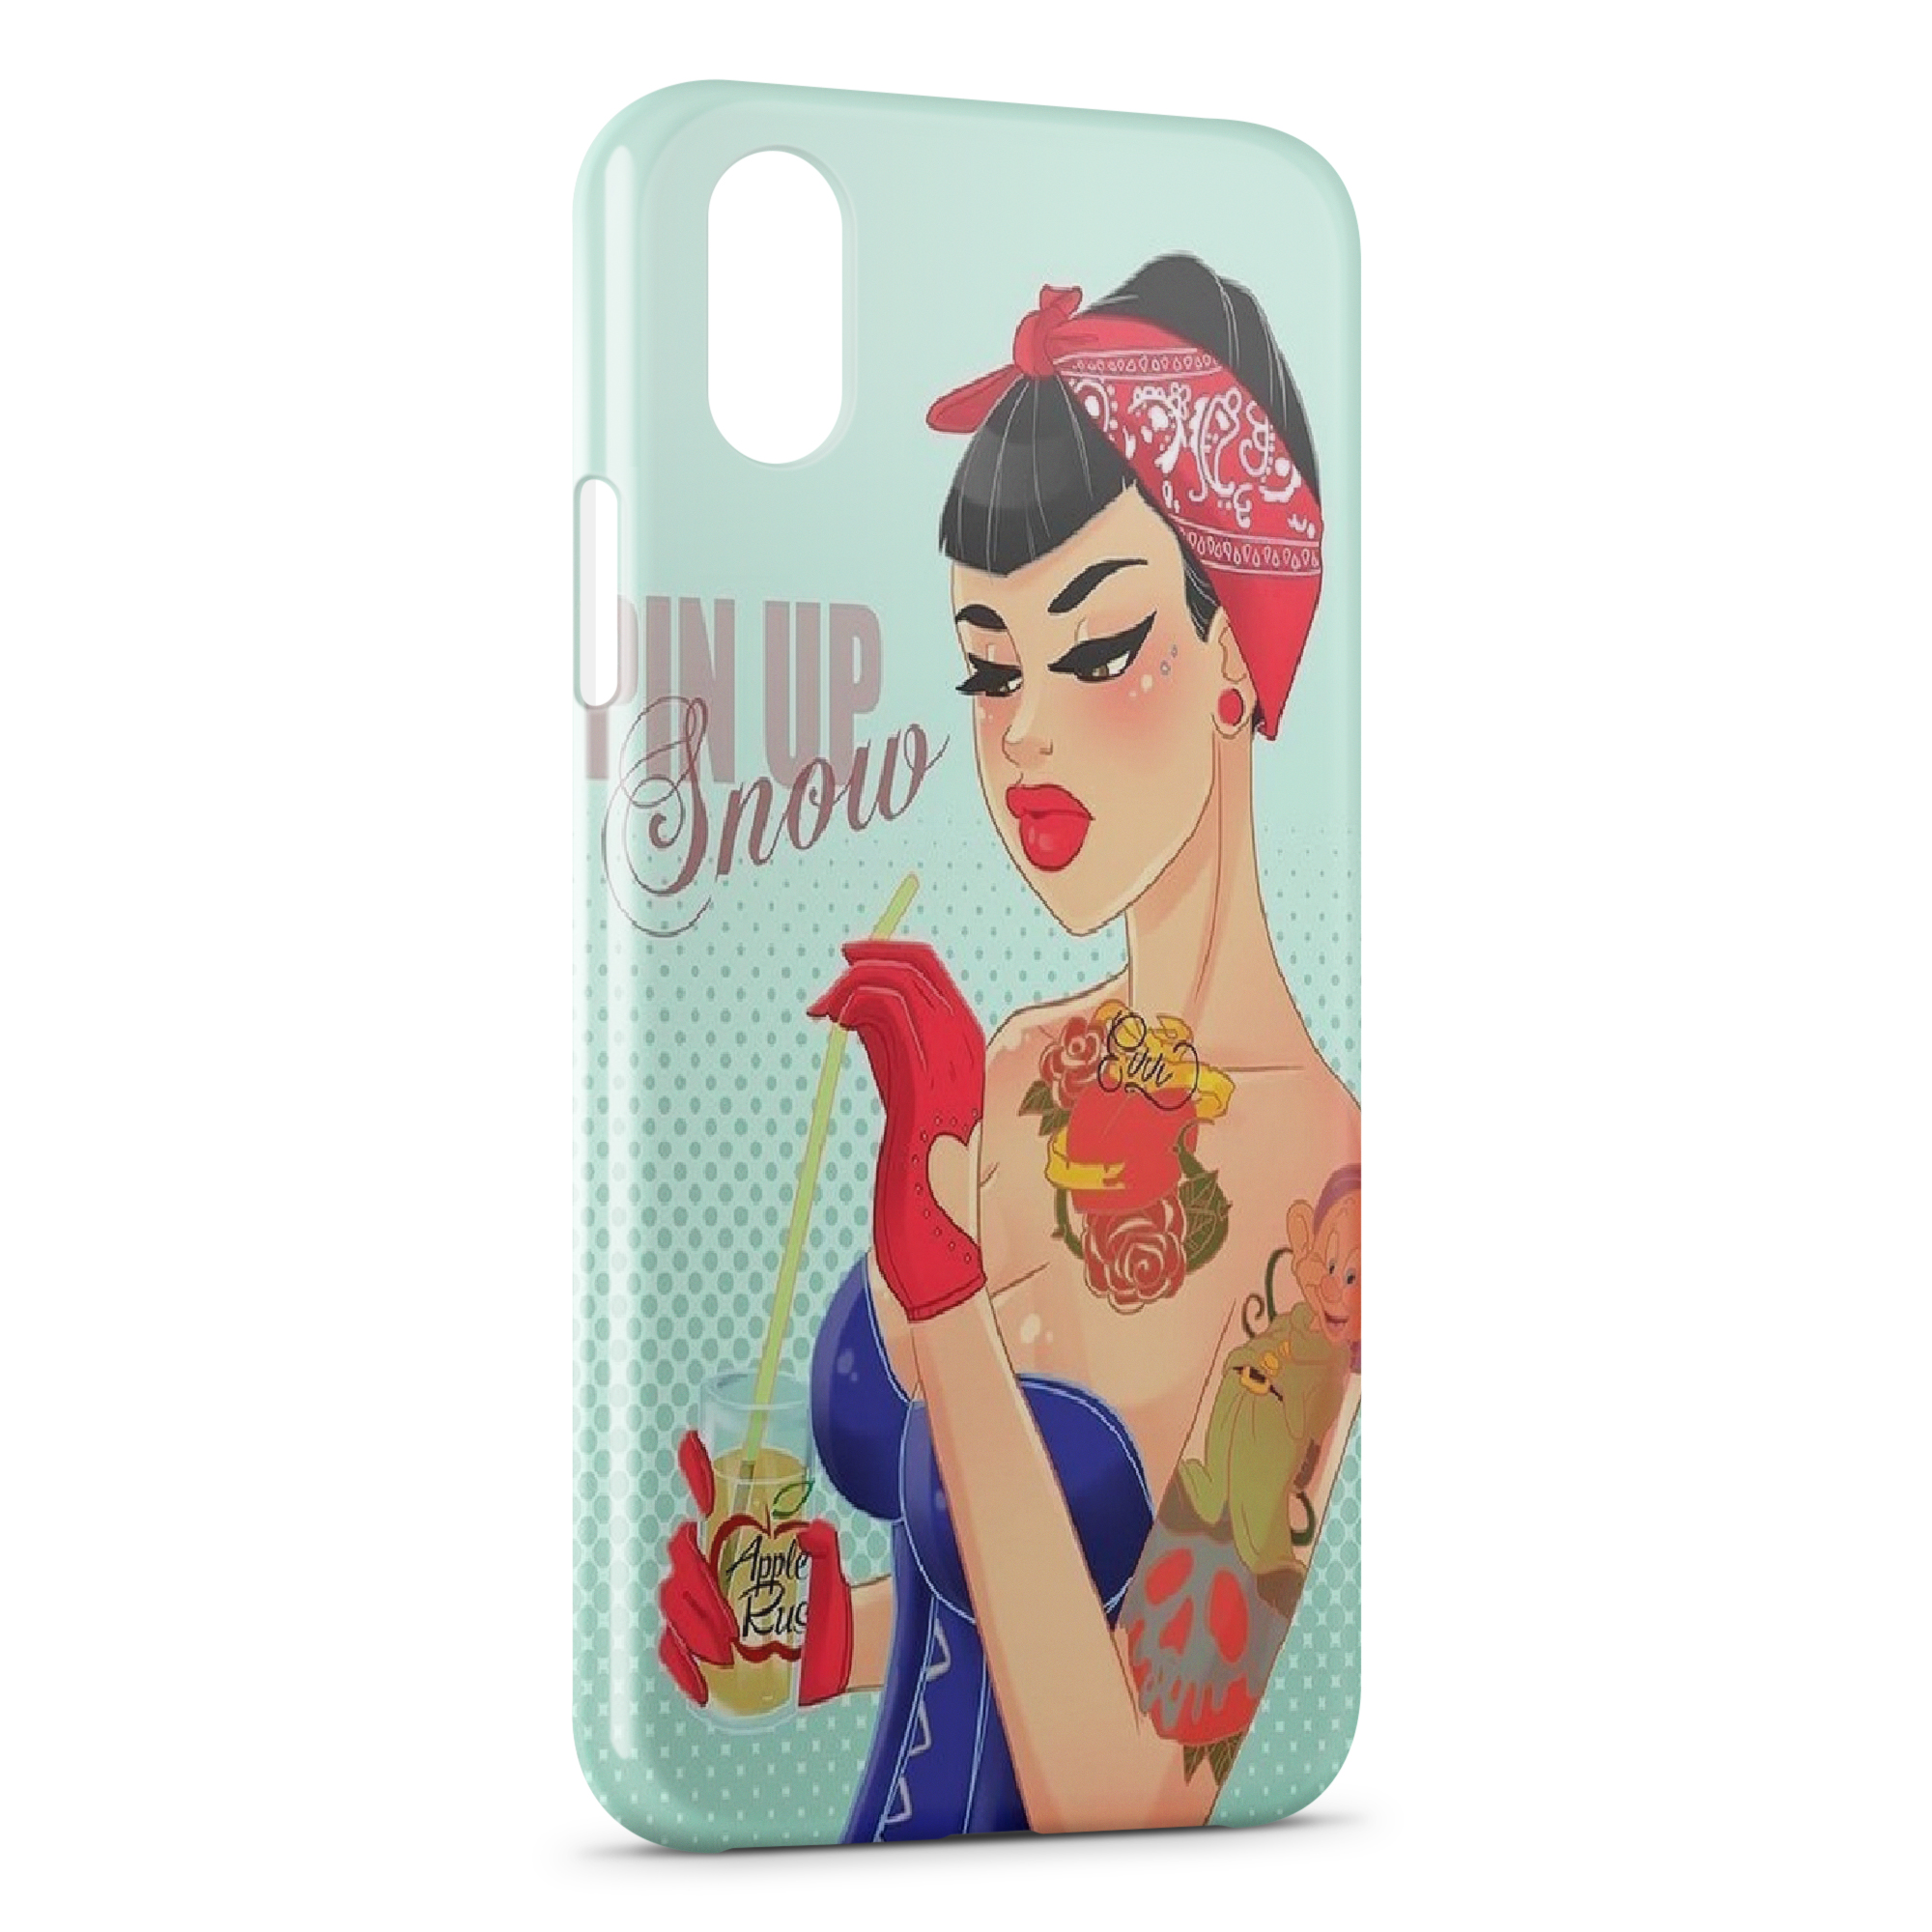 coque iphone xs max blanche neige